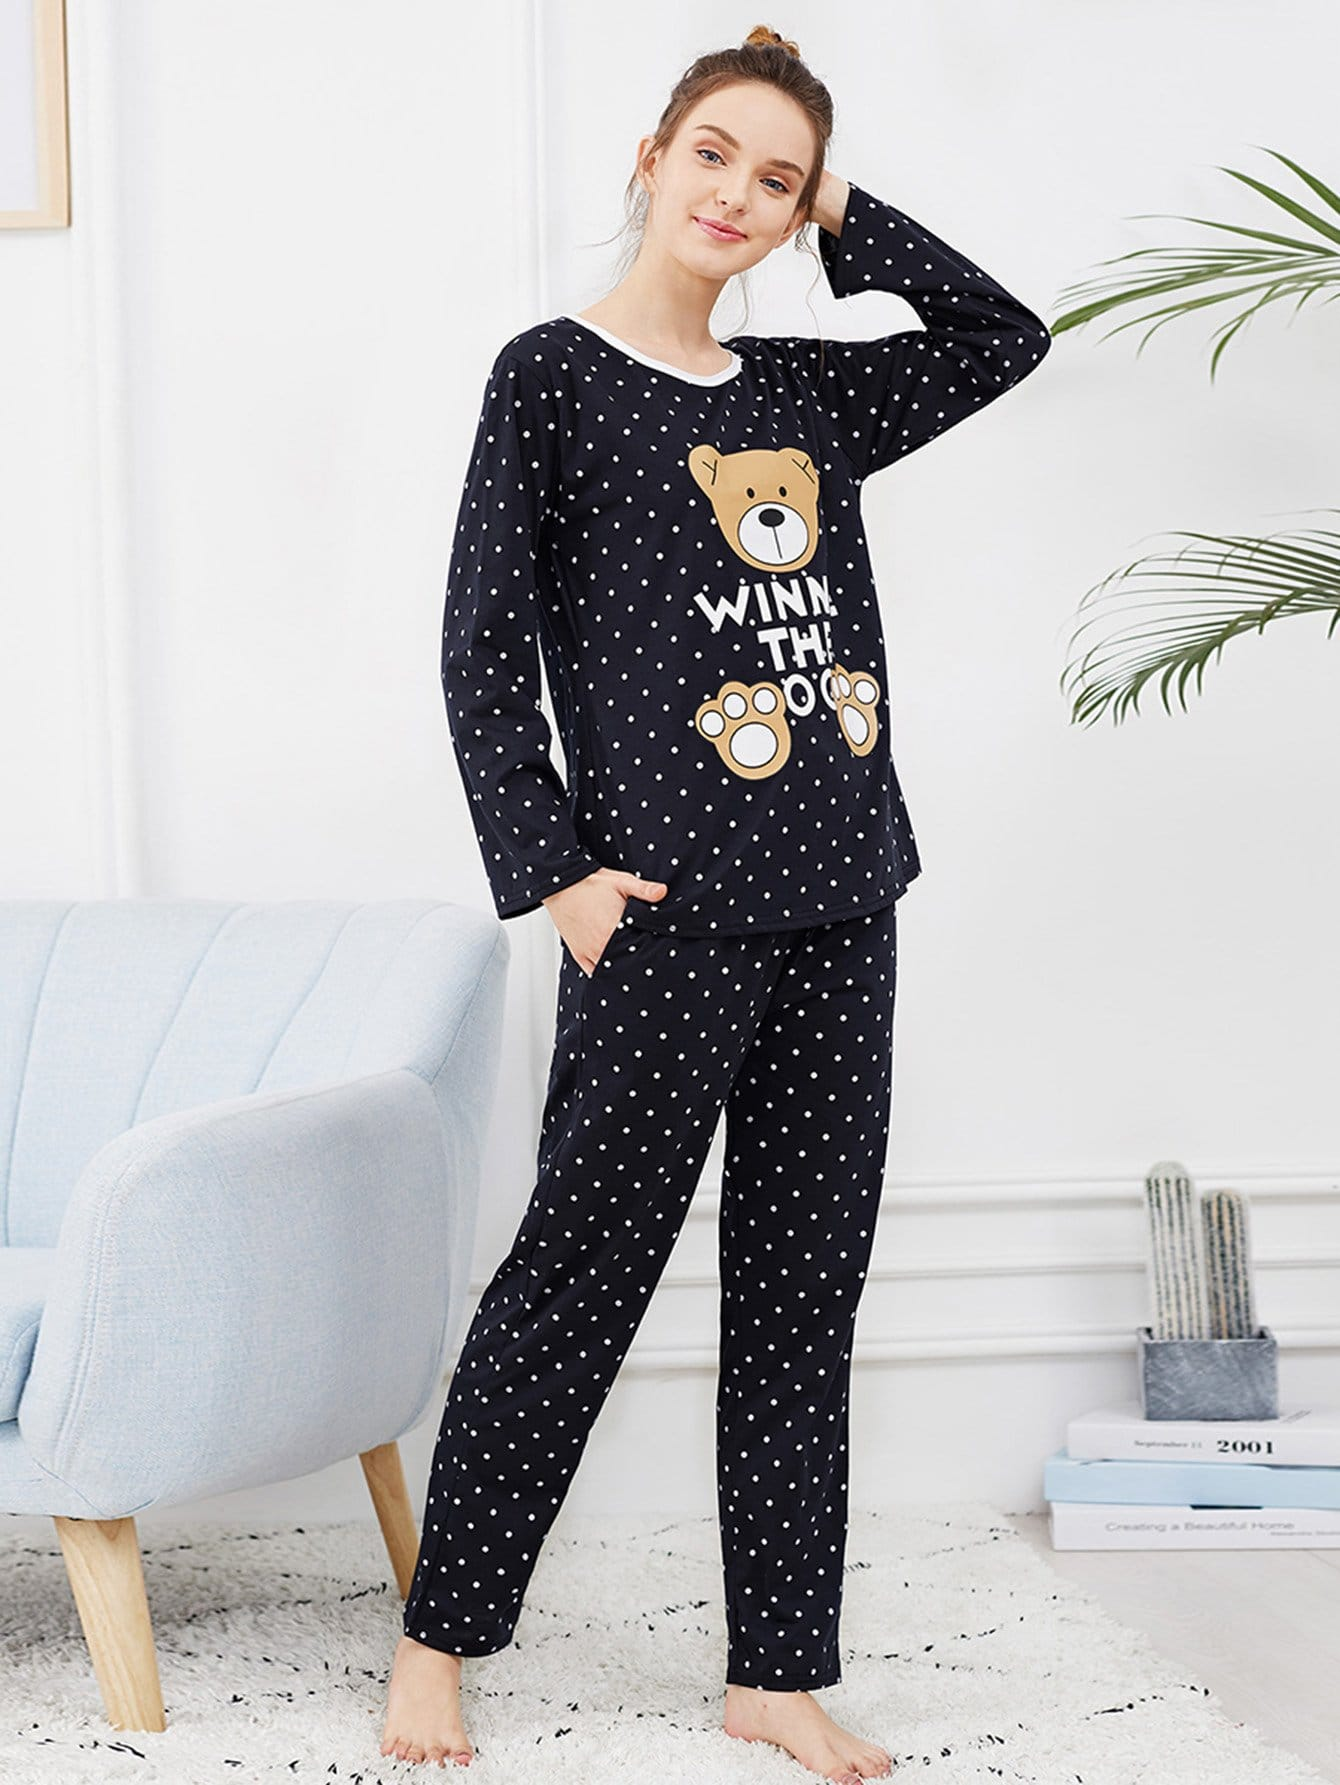 Bear Print Polka Dot Pajama Set